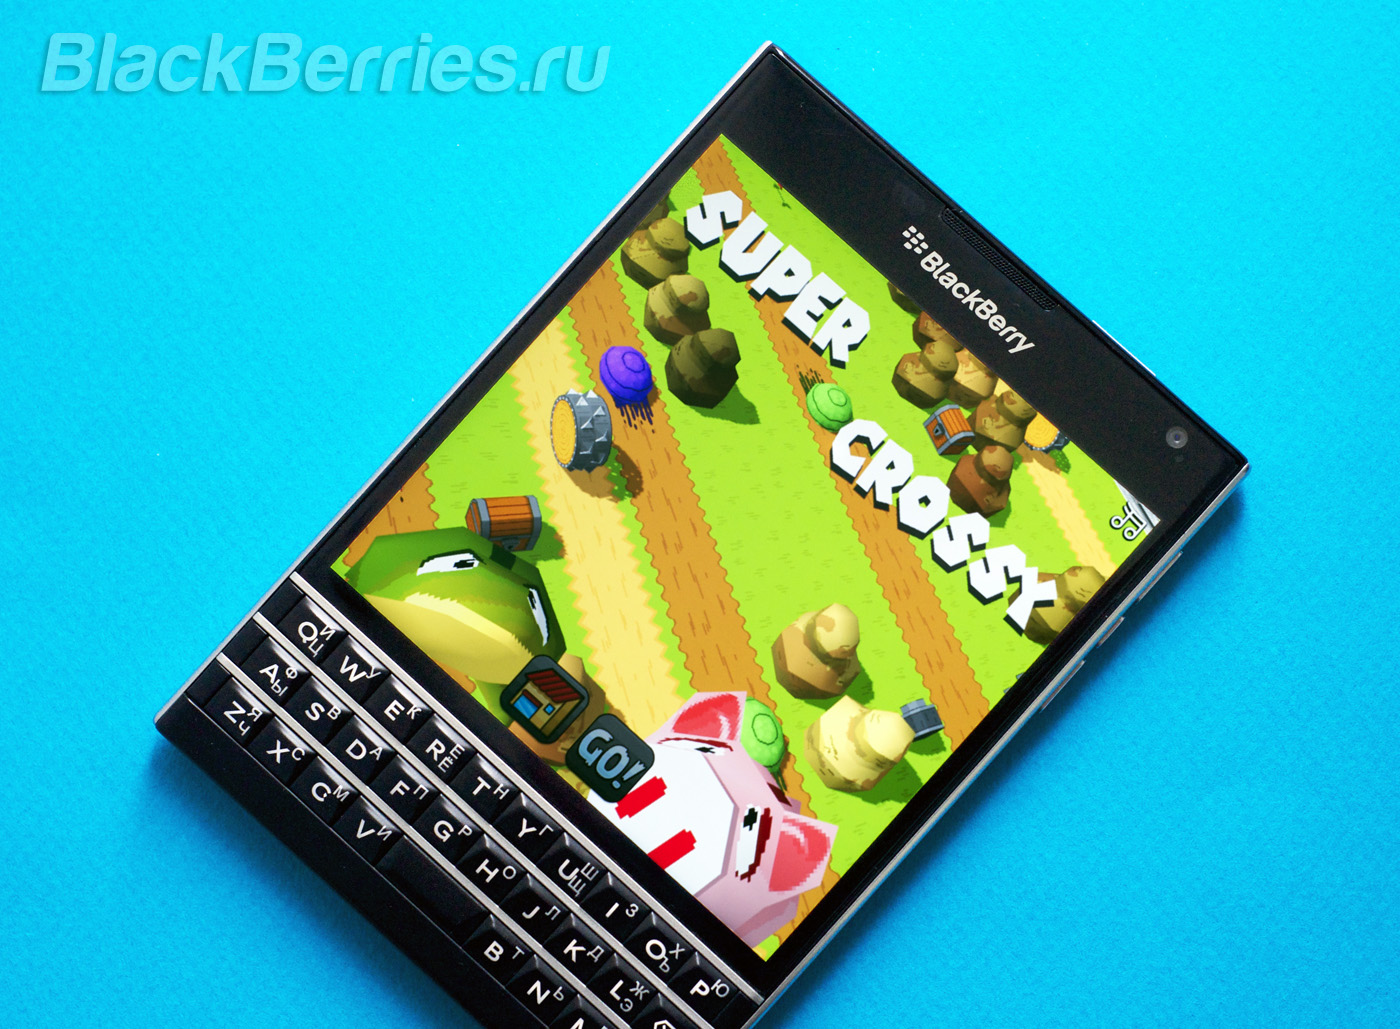 BlackBerry-Passport-SC